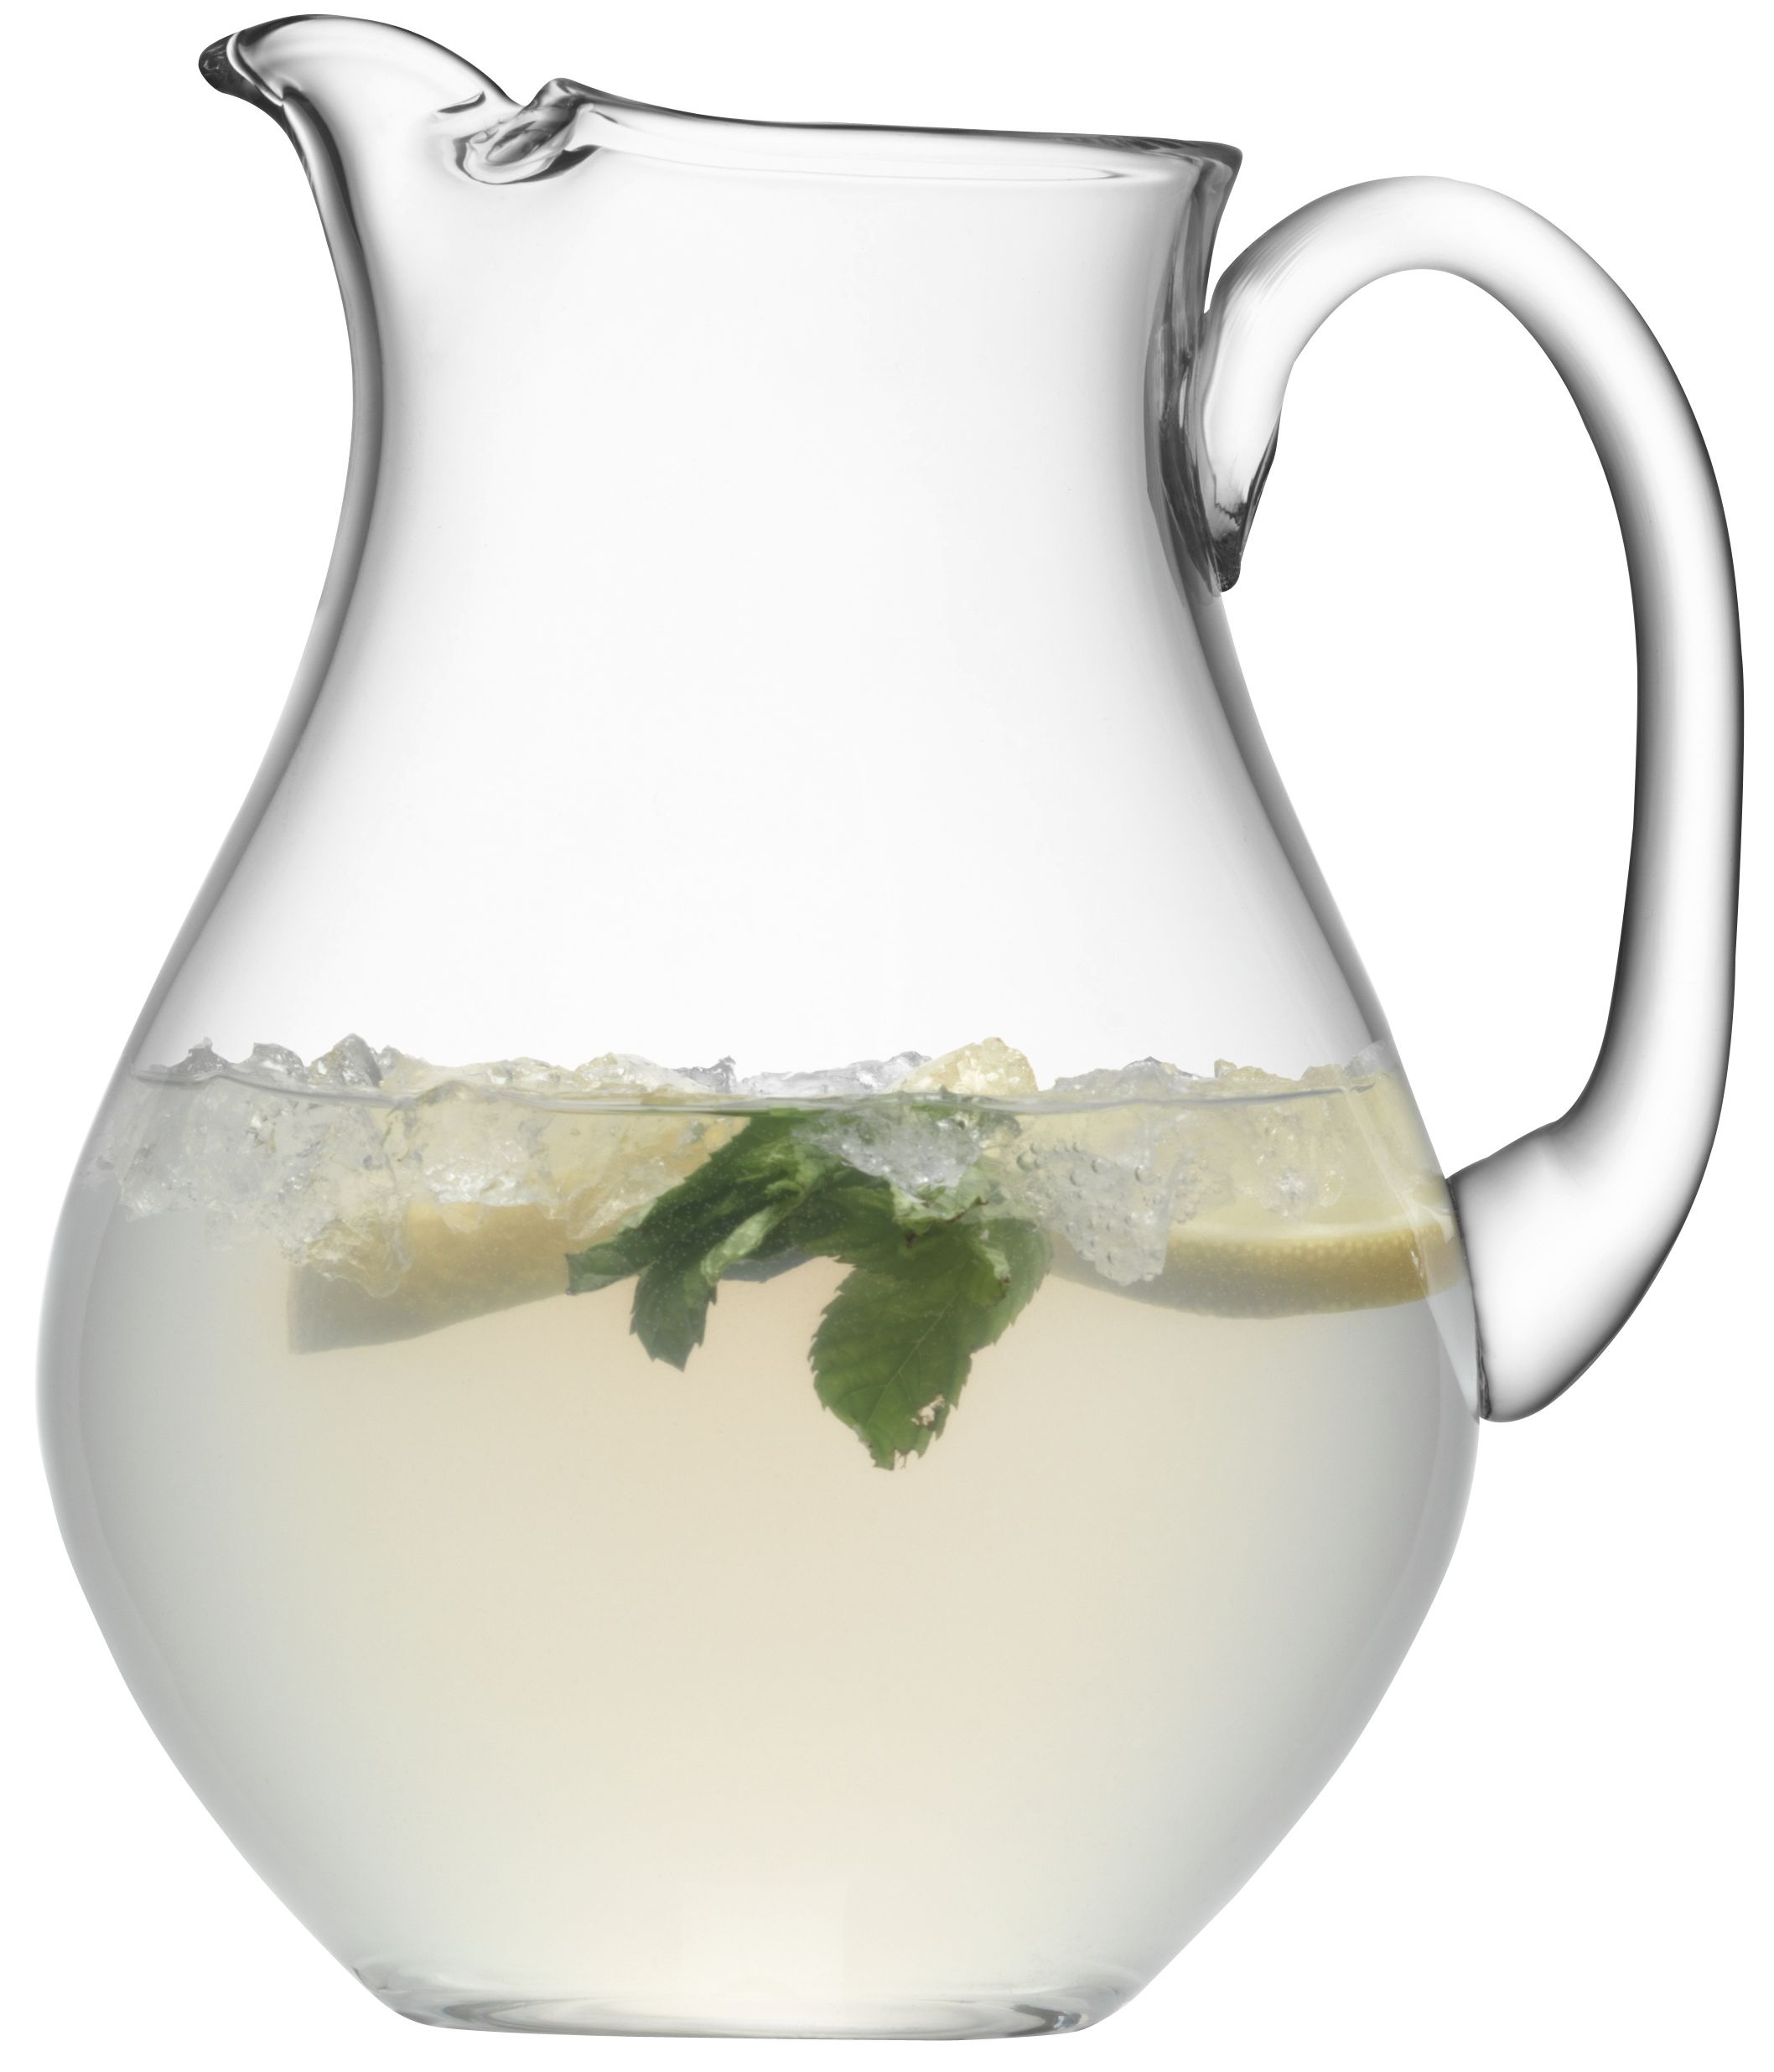 Bar ice lip jug clear